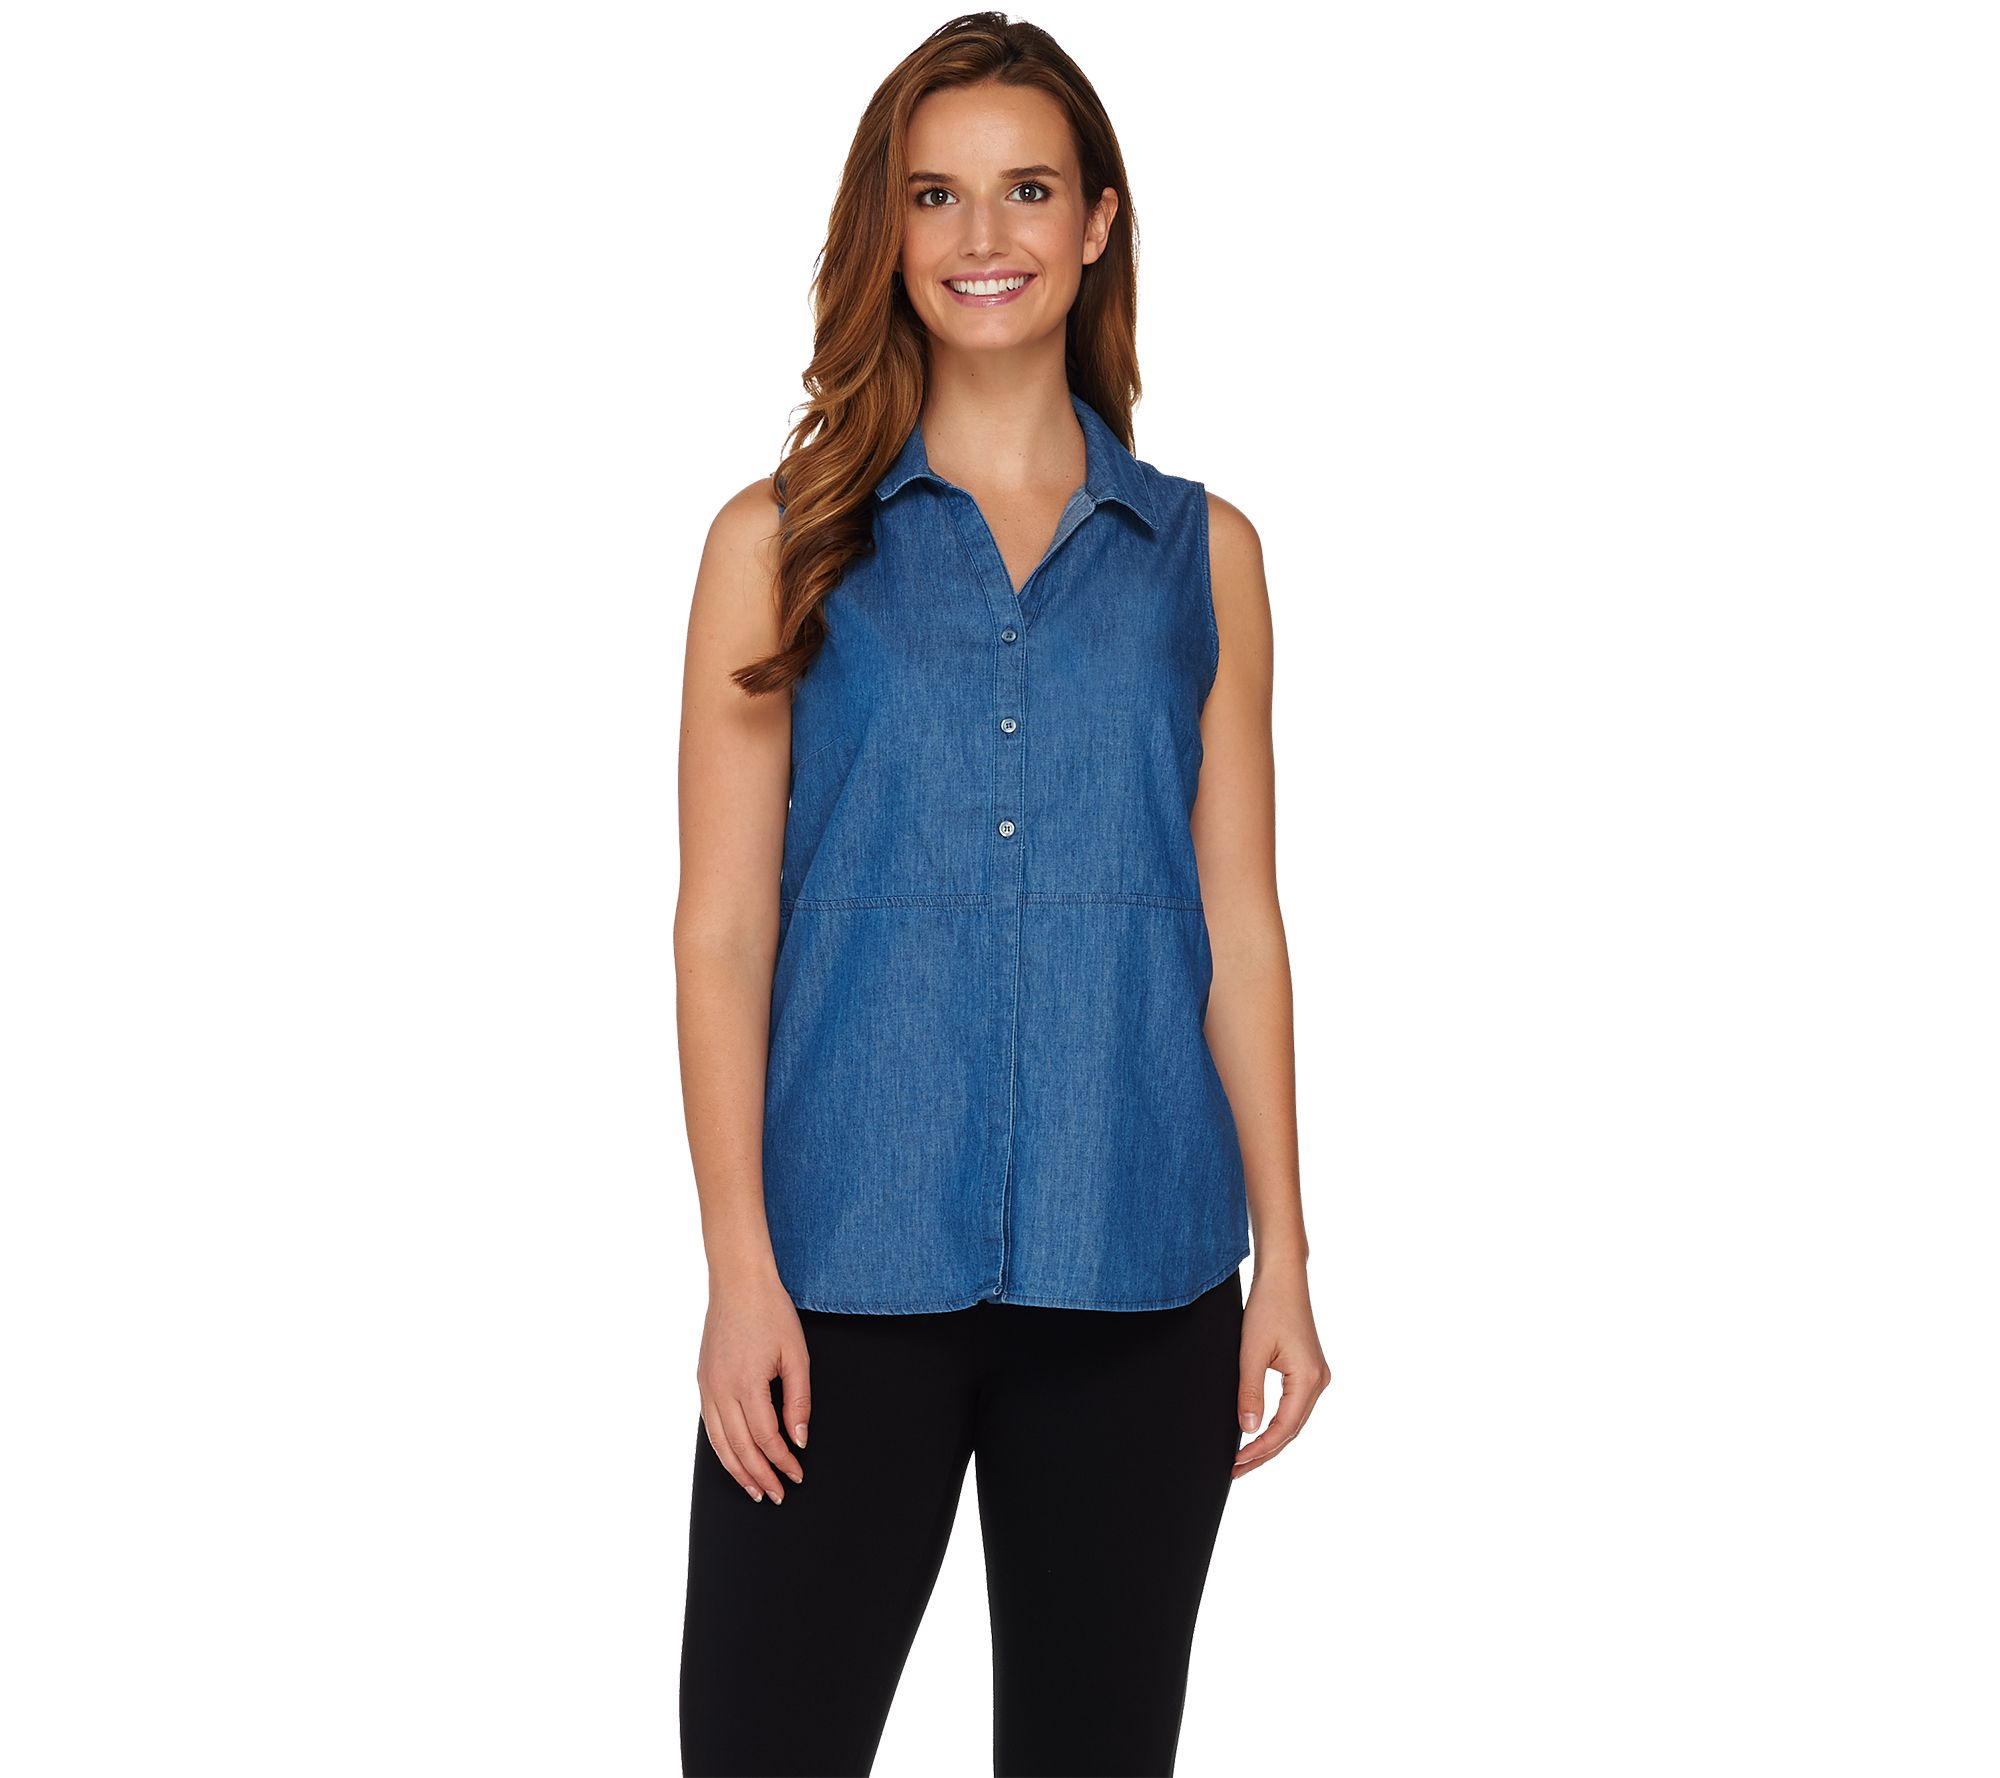 224f782a2abf1 Kelly by Clinton Kelly Button Front Sleeveless Denim Top - Page 1 — QVC.com